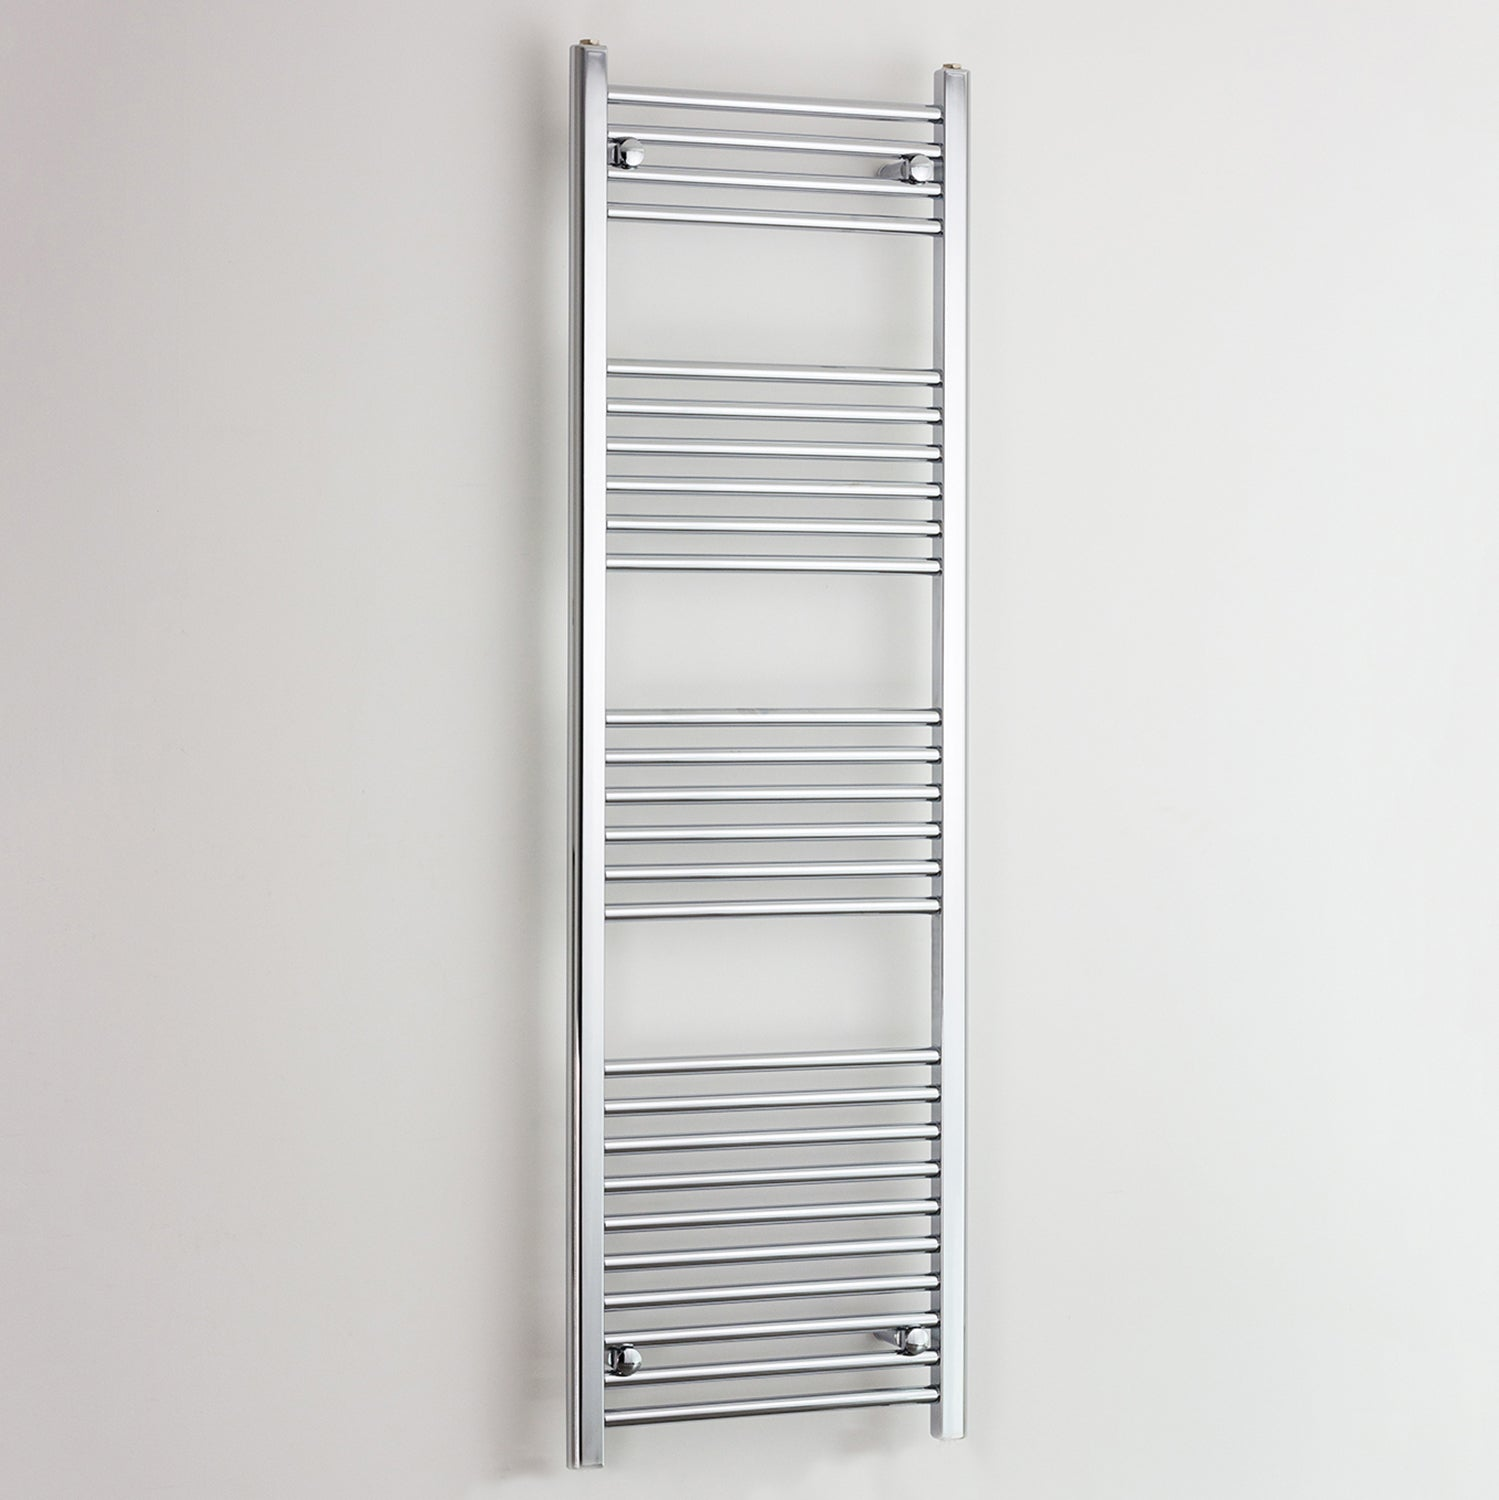 400mm Wide 1600mm High Straight Chrome Heated Towel Rail Radiator HTR,Towel Rail Only